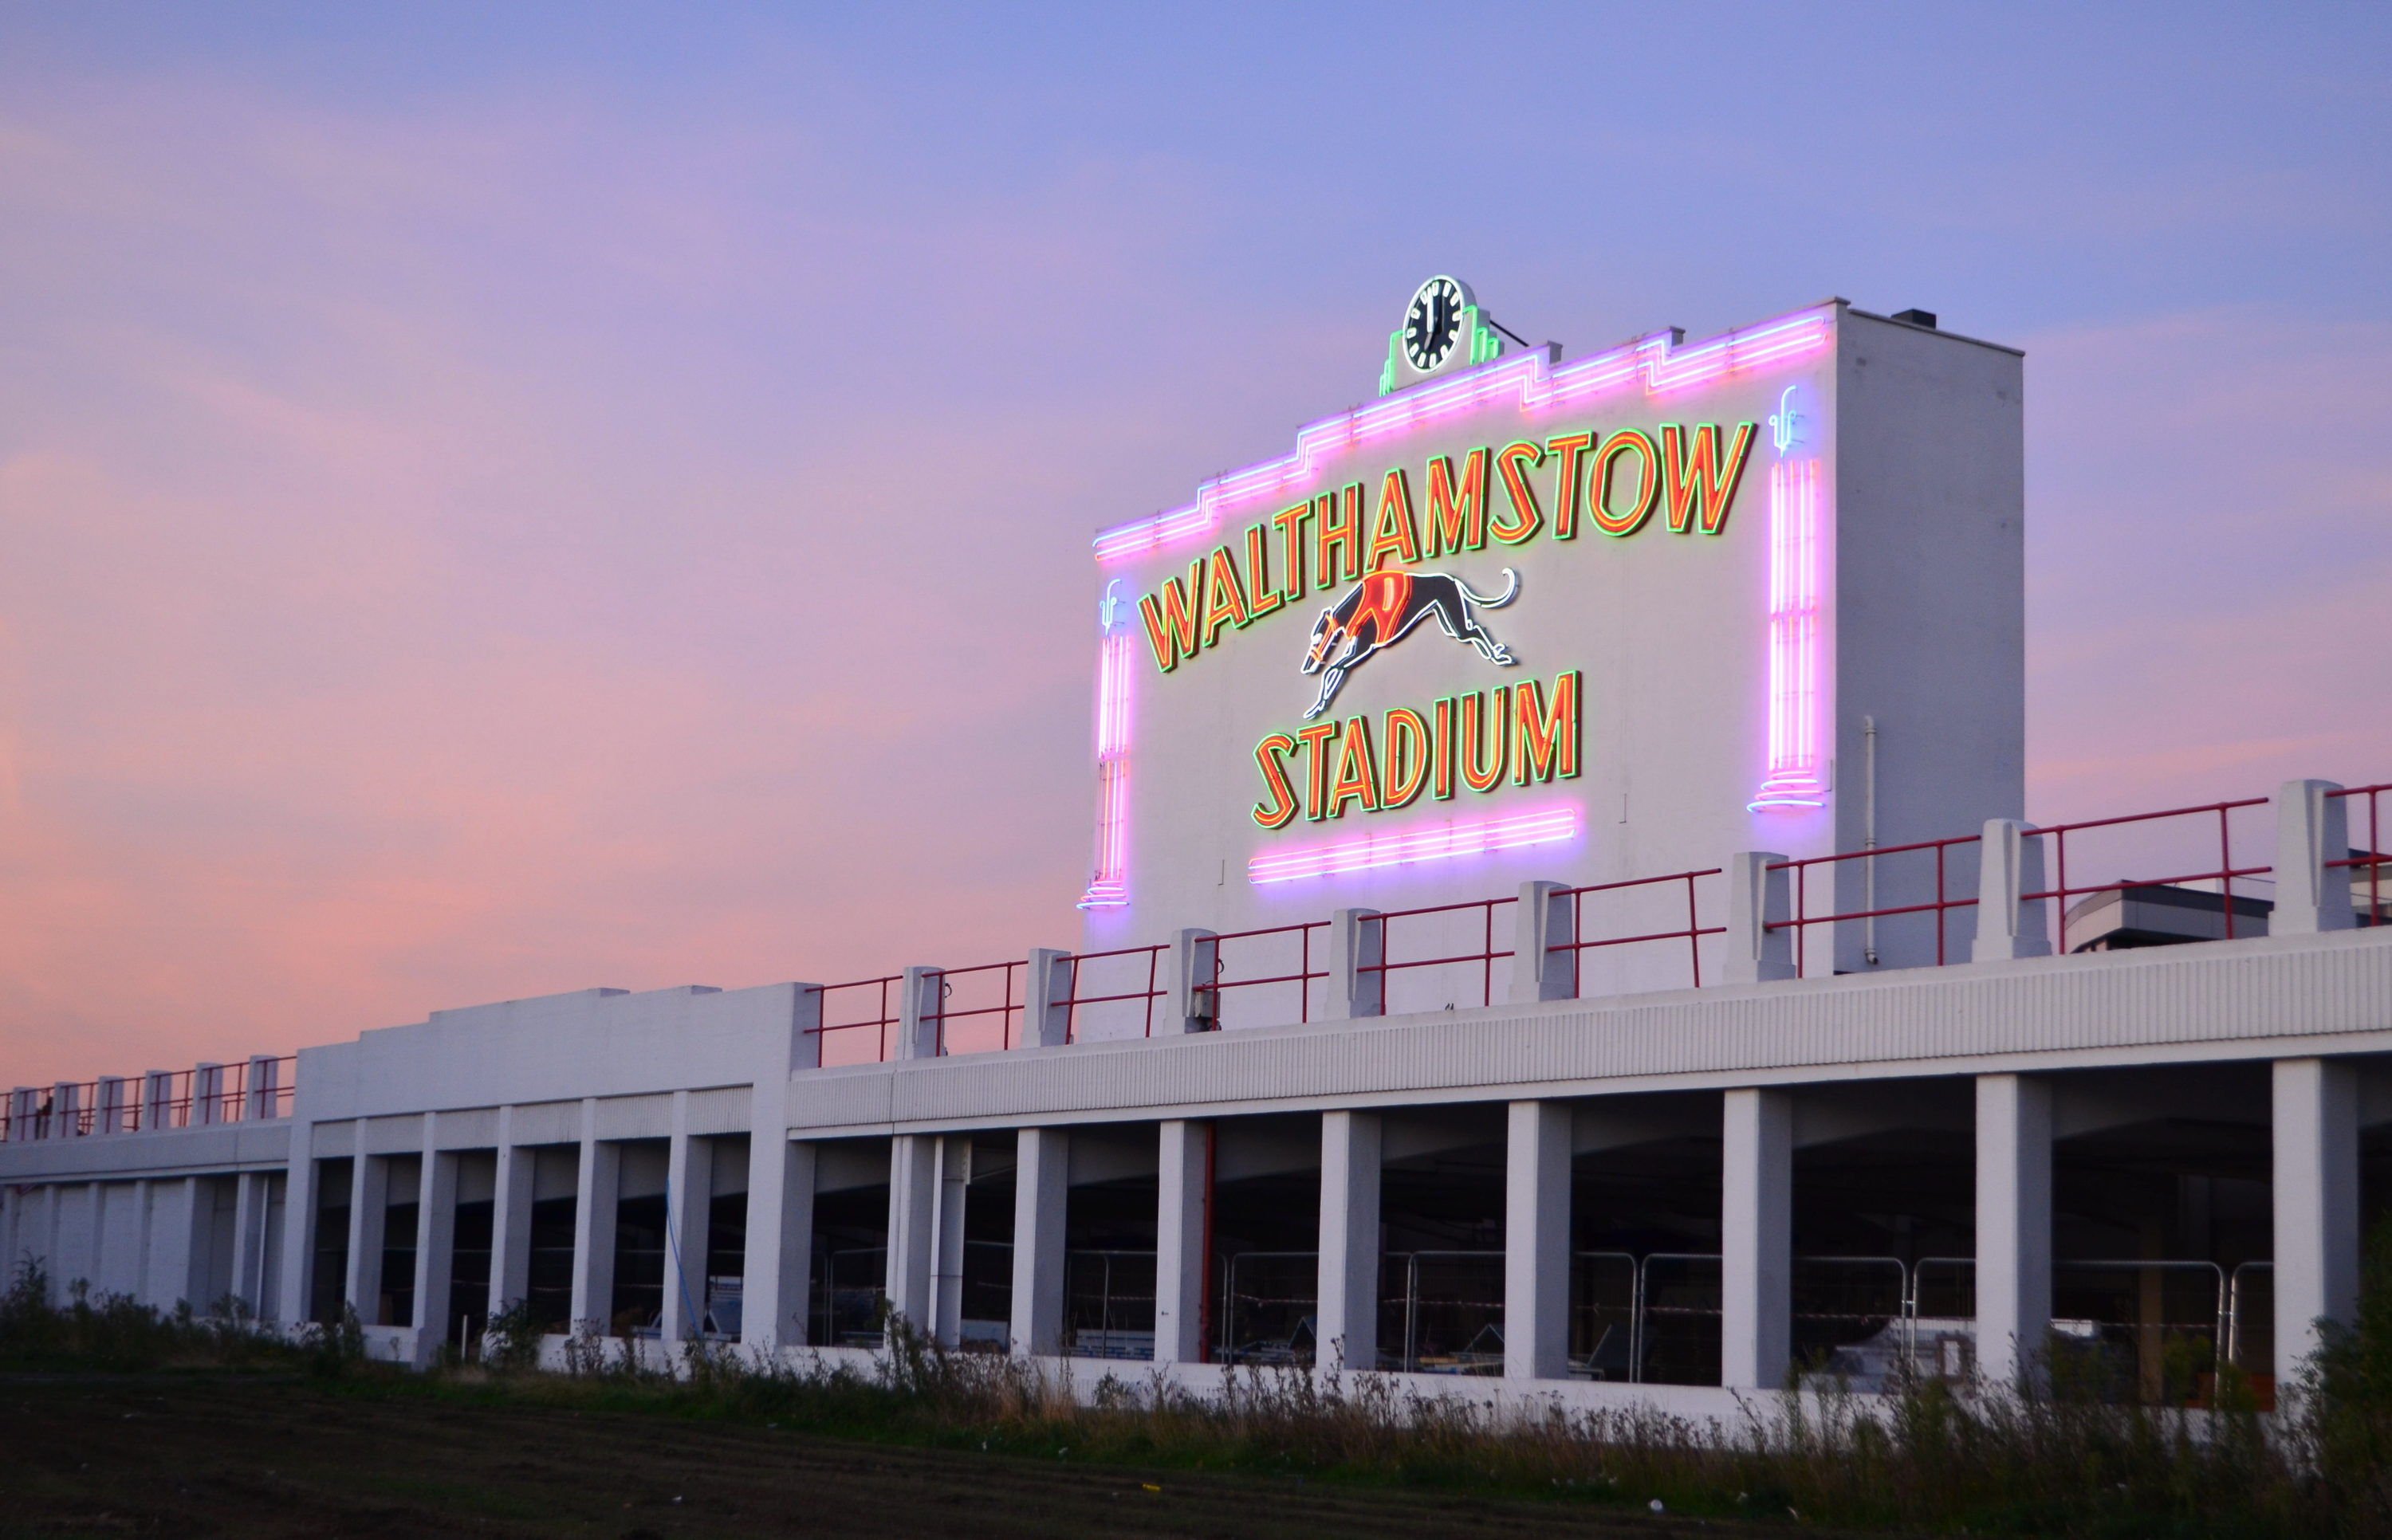 2018 Commended: Walthamstow Dogs, by Jacqueline Padmore Robinson, Wikimedia Commons CC BY-SA 4.0